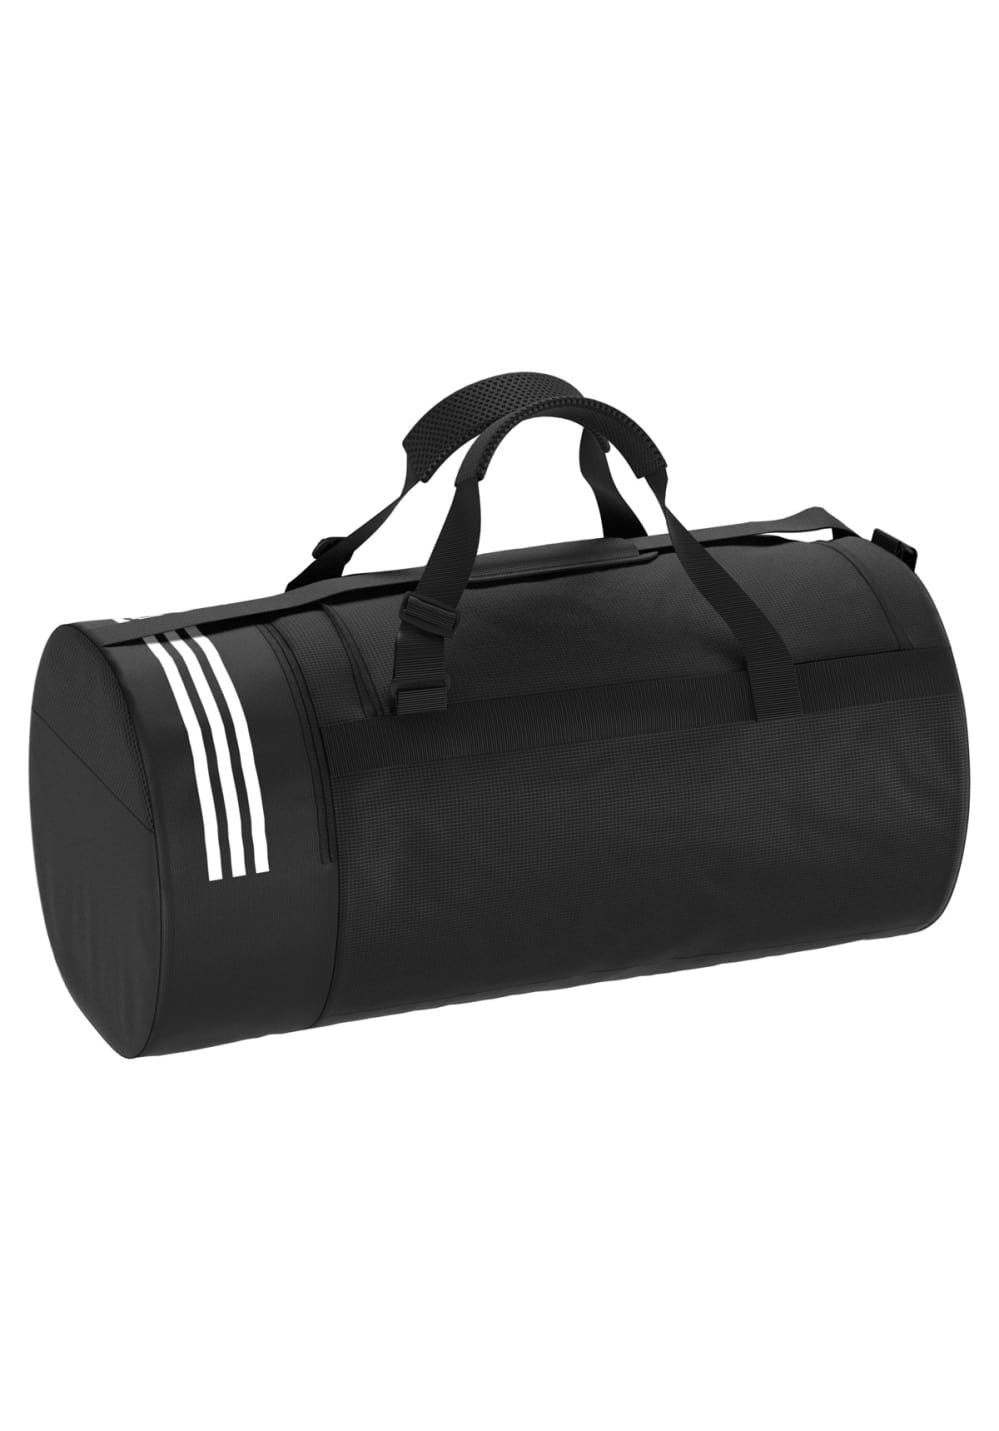 finest selection 1d2b1 a50d1 ... adidas Convertible 3-Stripes Duffel Bag Large - Sports bags - Black.  Back to Overview. 1  2  3. Previous